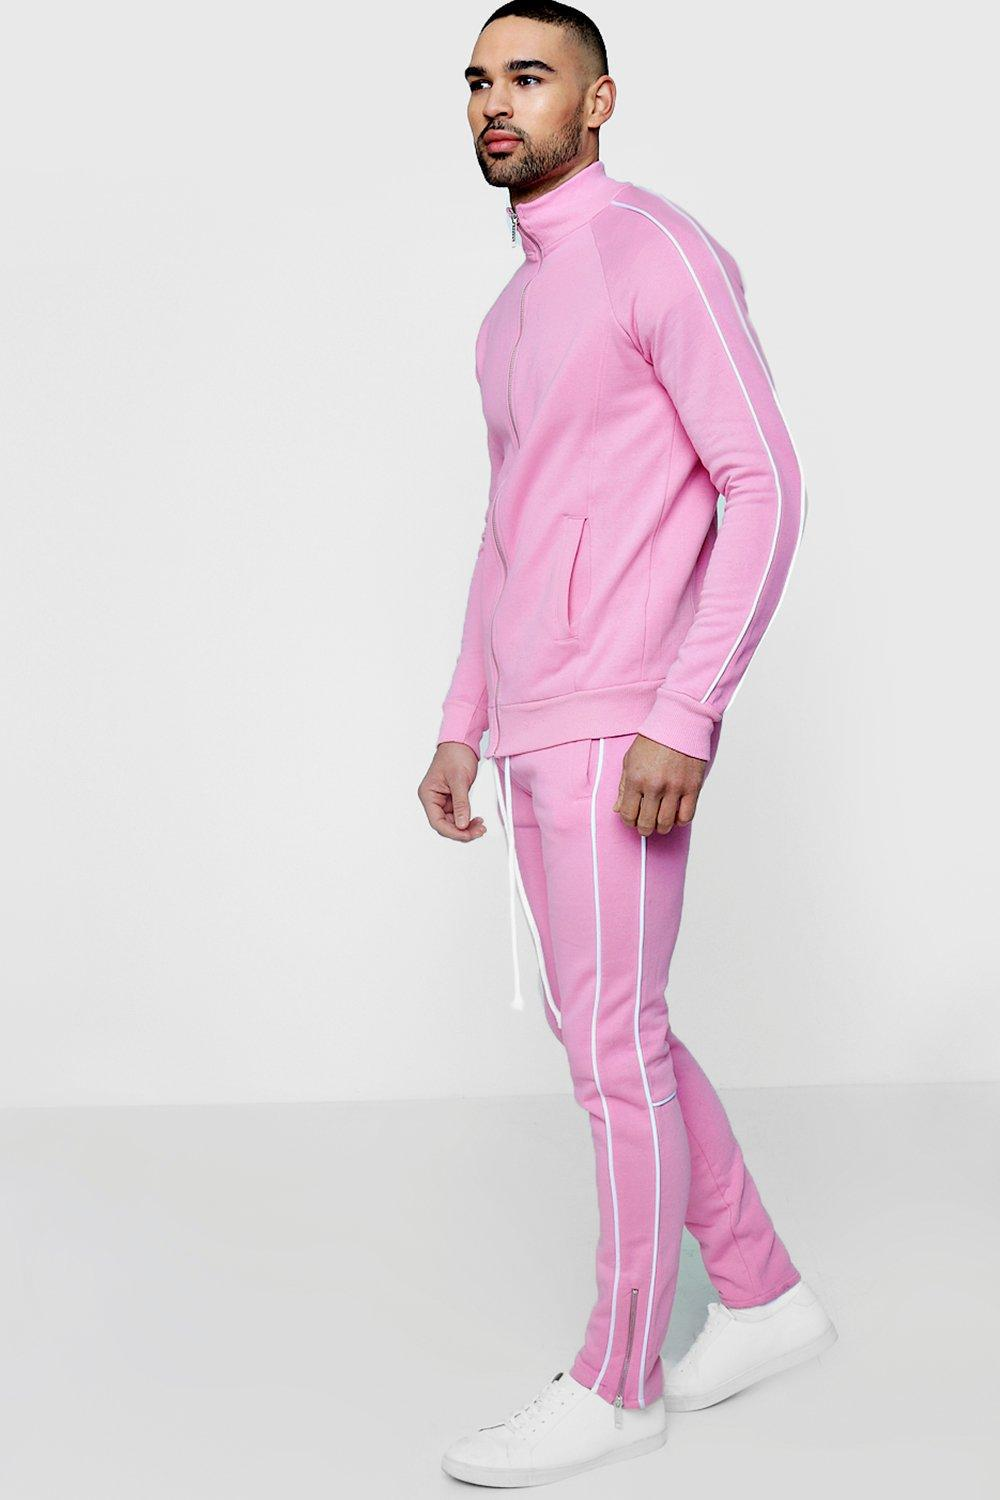 89c9e9eb71a1 Boohoo Skinny Fit Piped Tracksuit in Pink for Men - Lyst